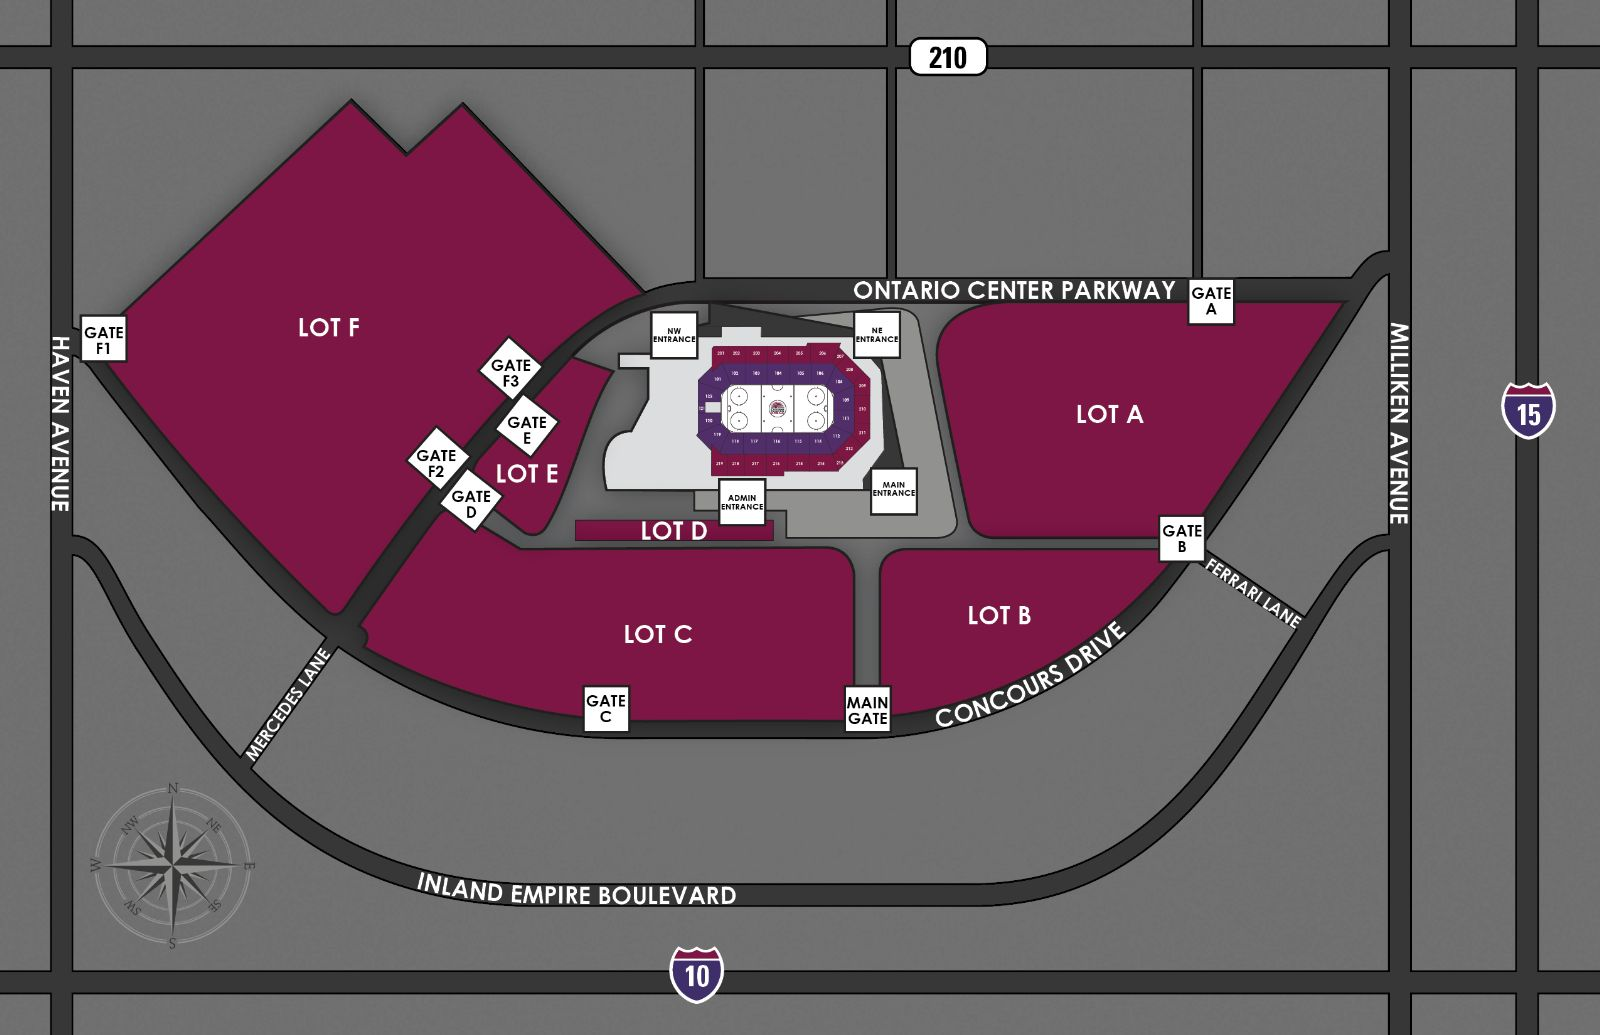 Parking Guide Citizens Business Bank Arena